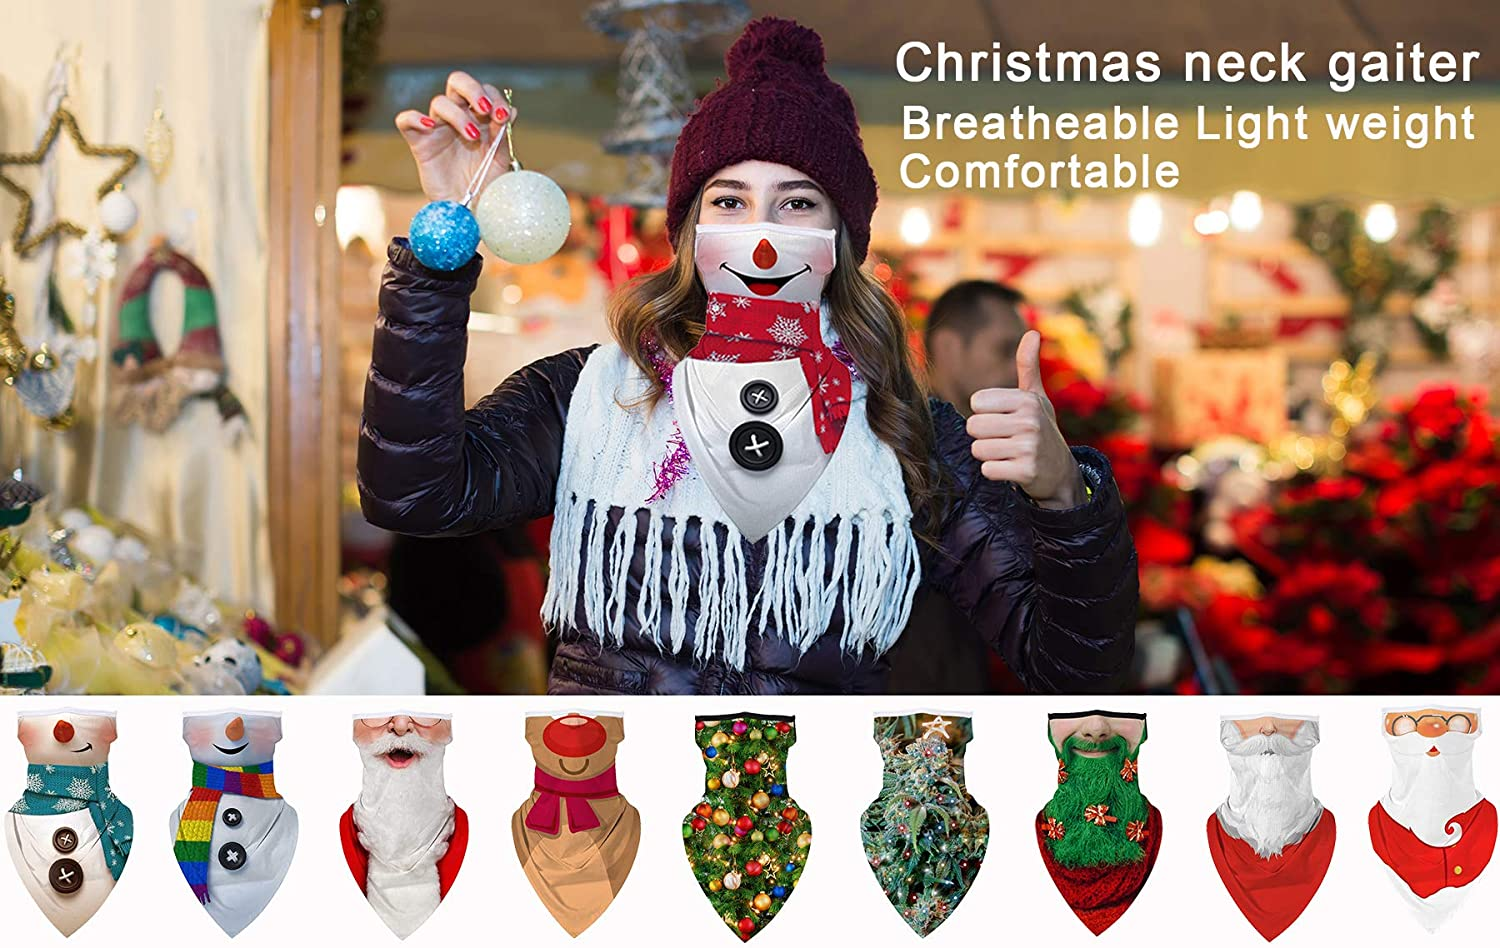 2 PCS Christmas Neck Gaiter Face Mask with Earloop for Men Women Bandana Neck Gators Face Covering for Wind Dust